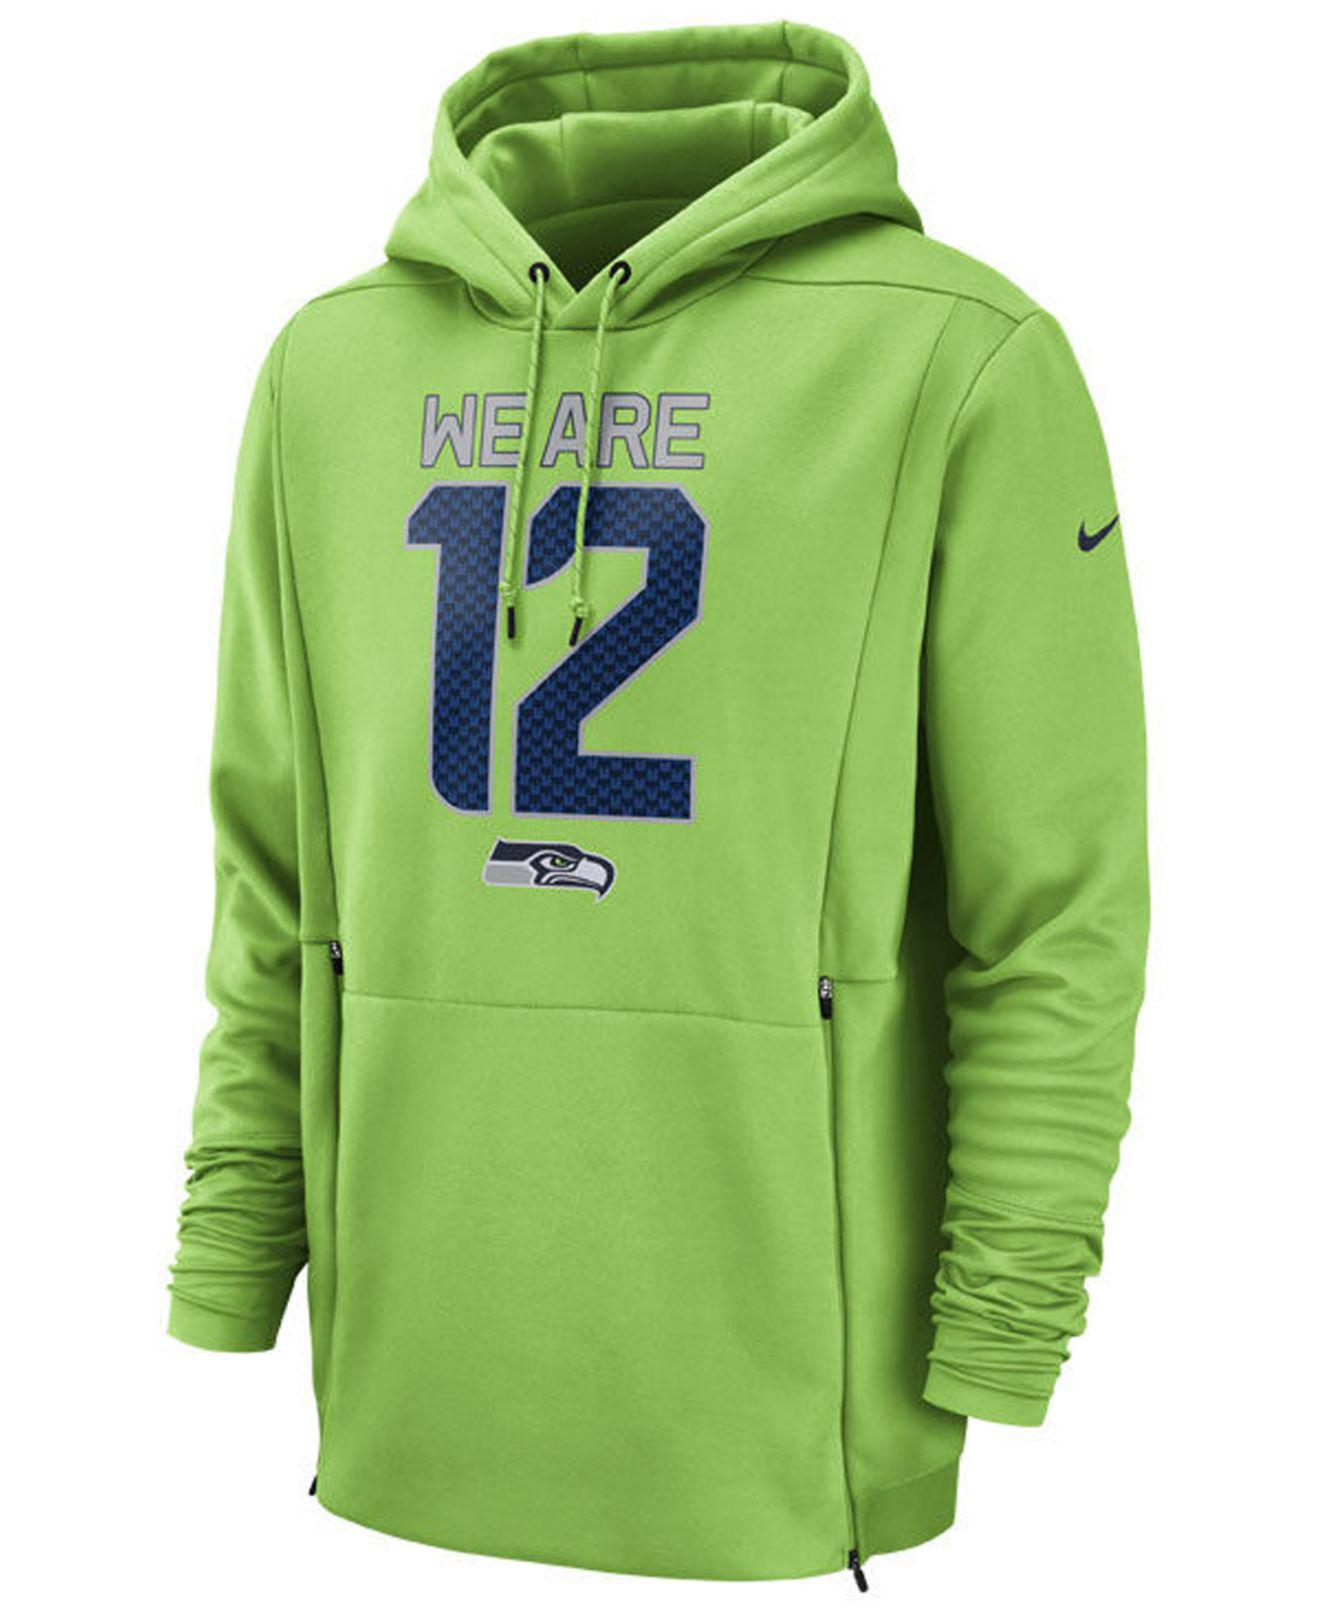 984f1e4c0fe Nike Seattle Seahawks Sideline Player Local Therma Hoodie in Green ...